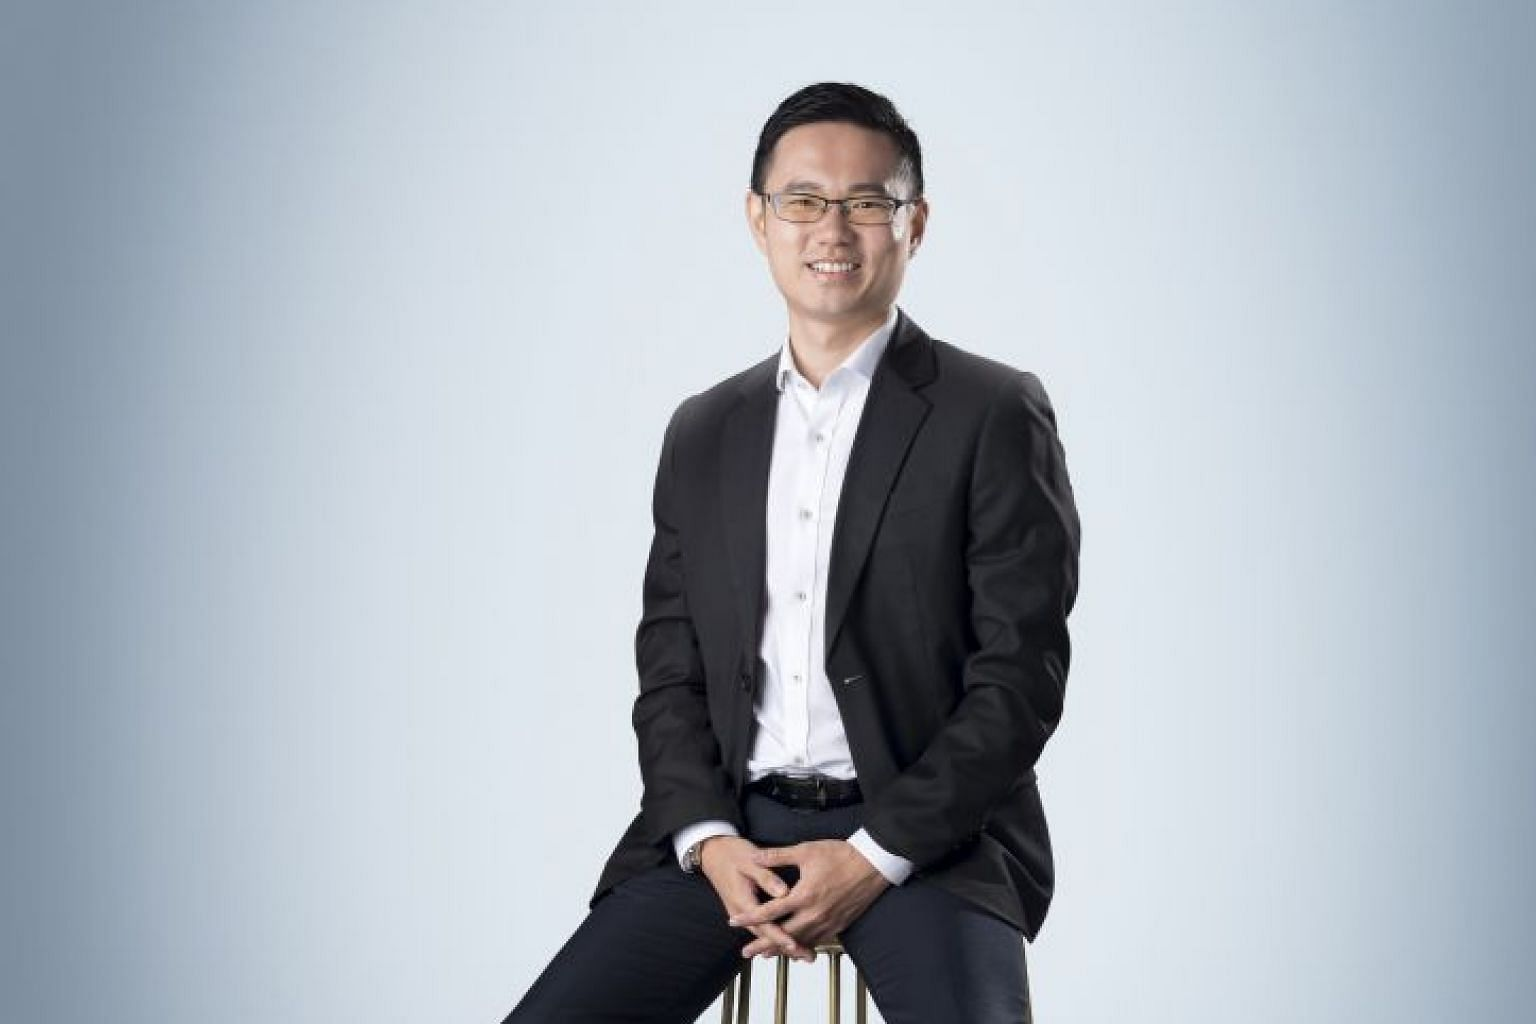 iFast Financial's Mr You Weiren is a firm believer in fundamental analysis and value investing.